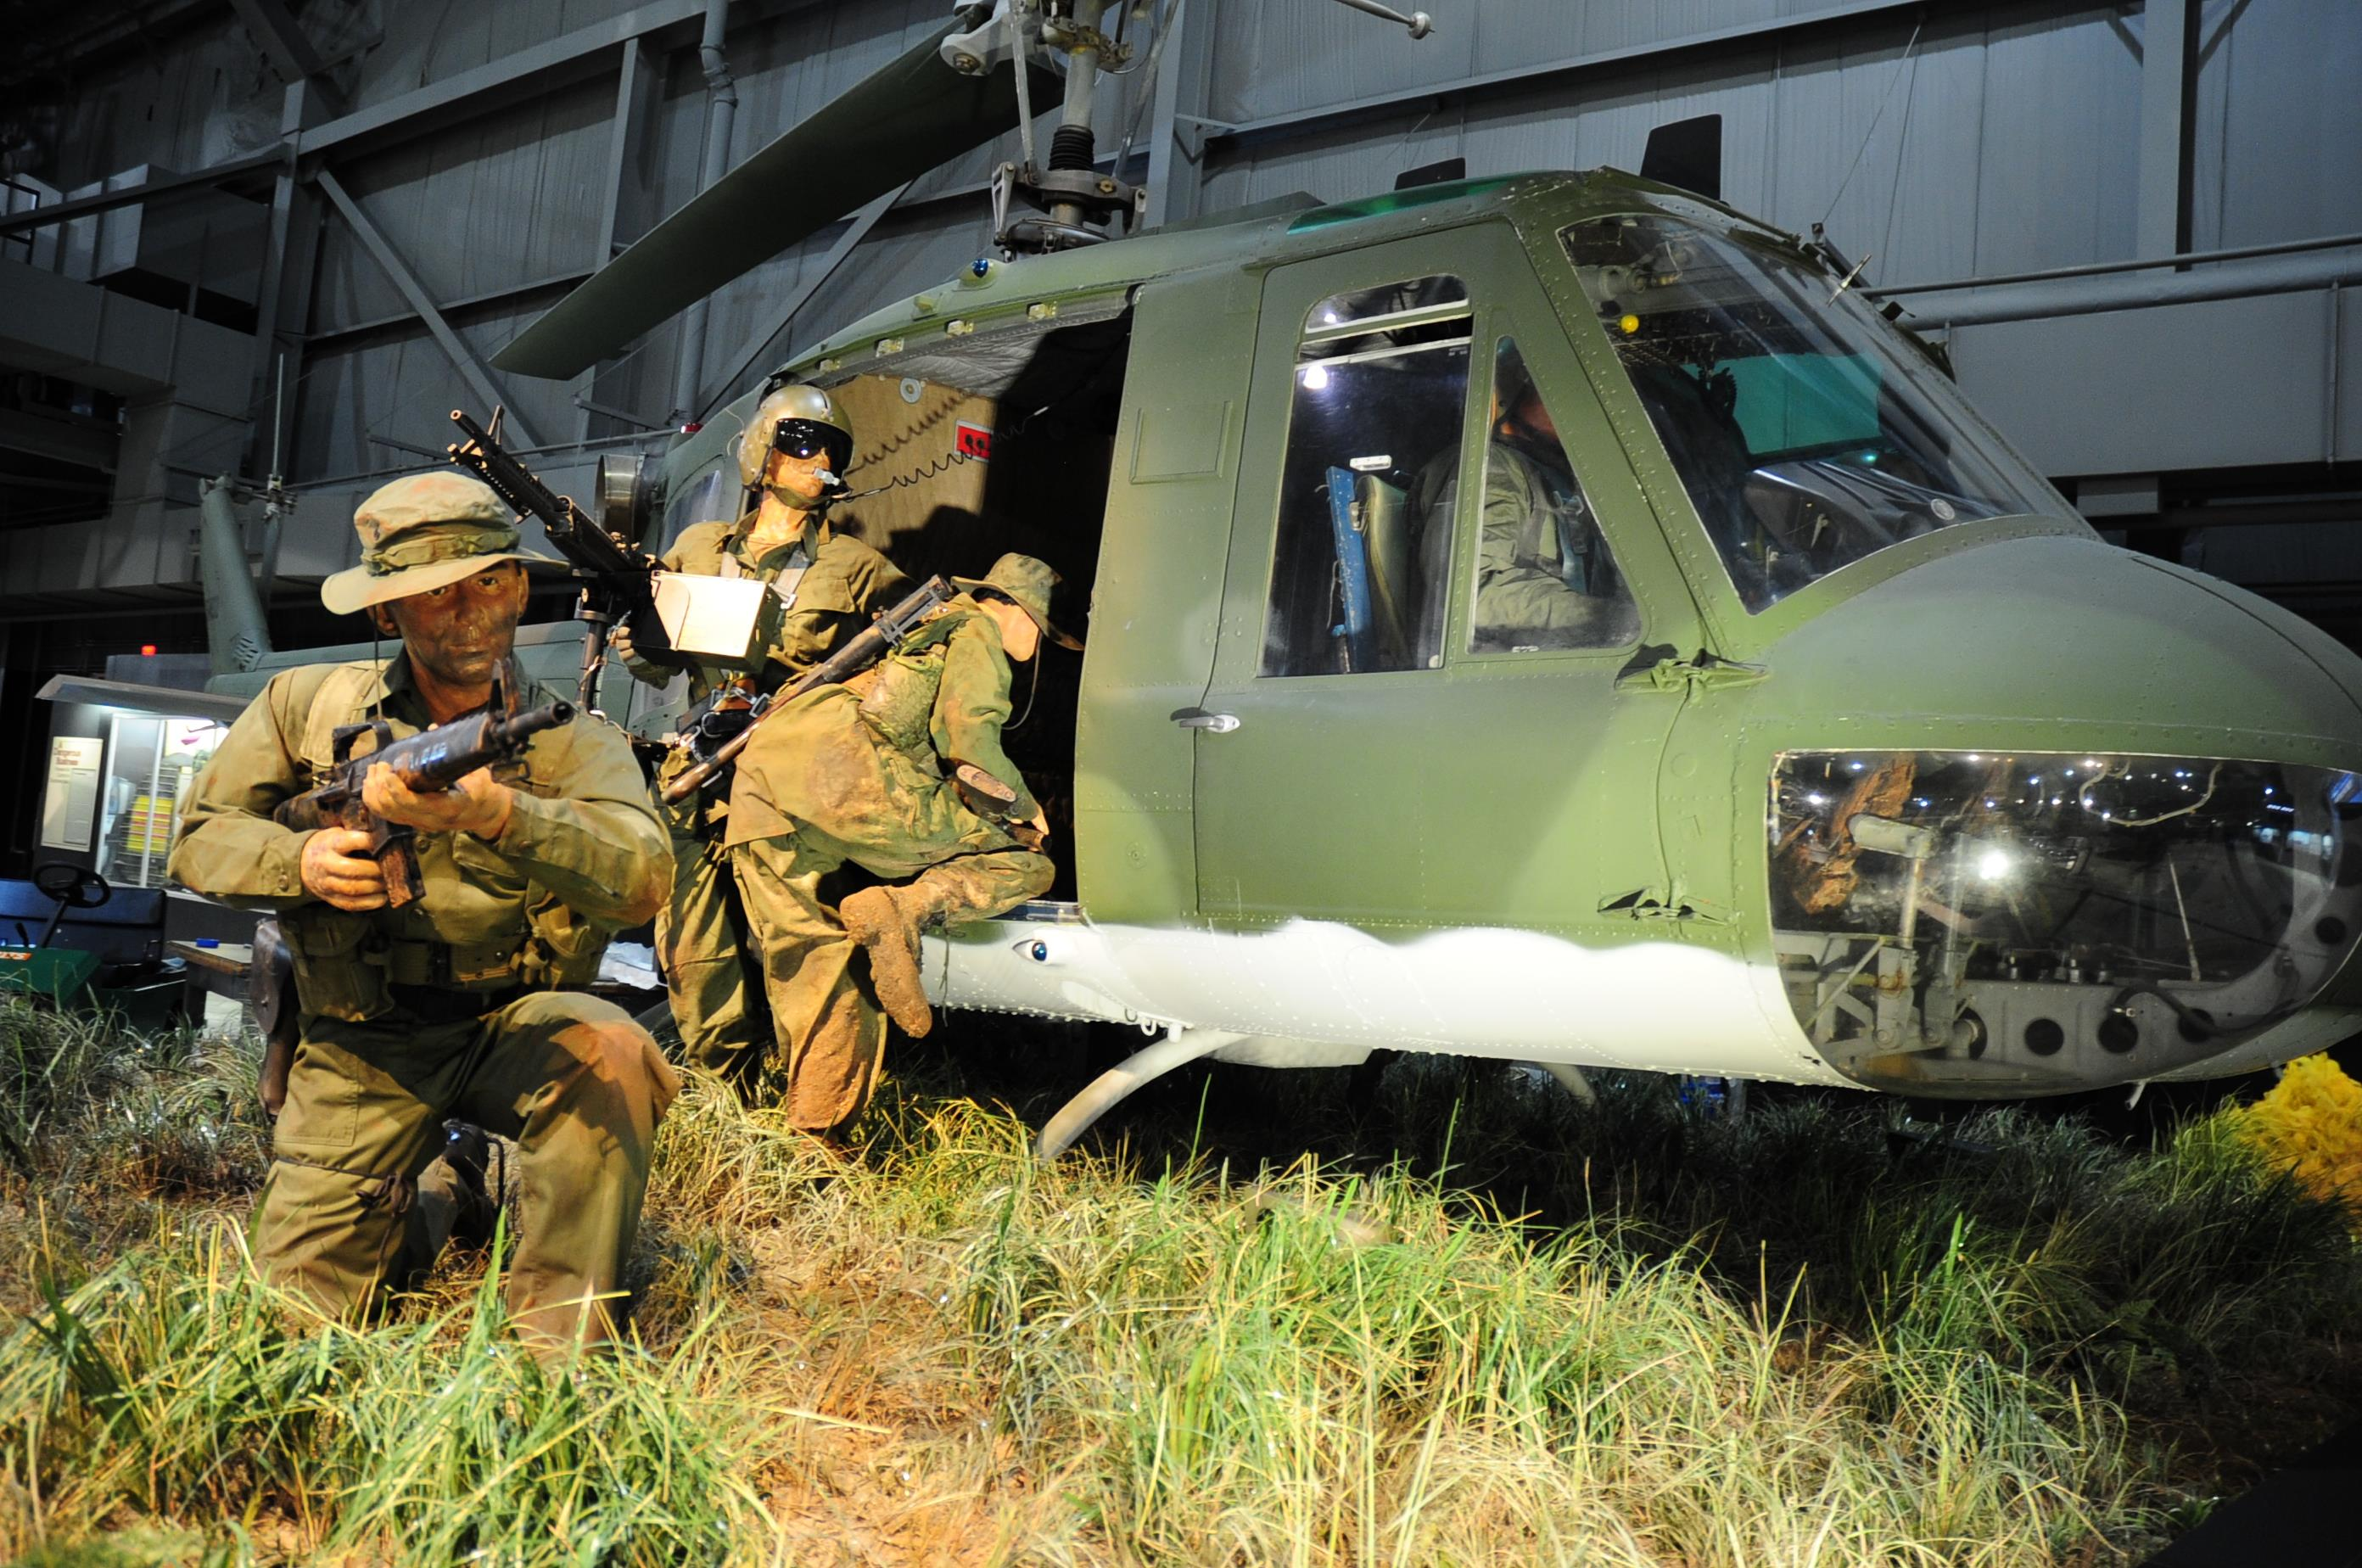 Bell UH-1P Iroquois exhibit on display in the Southeast Asia War Gallery at the National Museum of the United States Air Force. (U.S. Air Force photo)